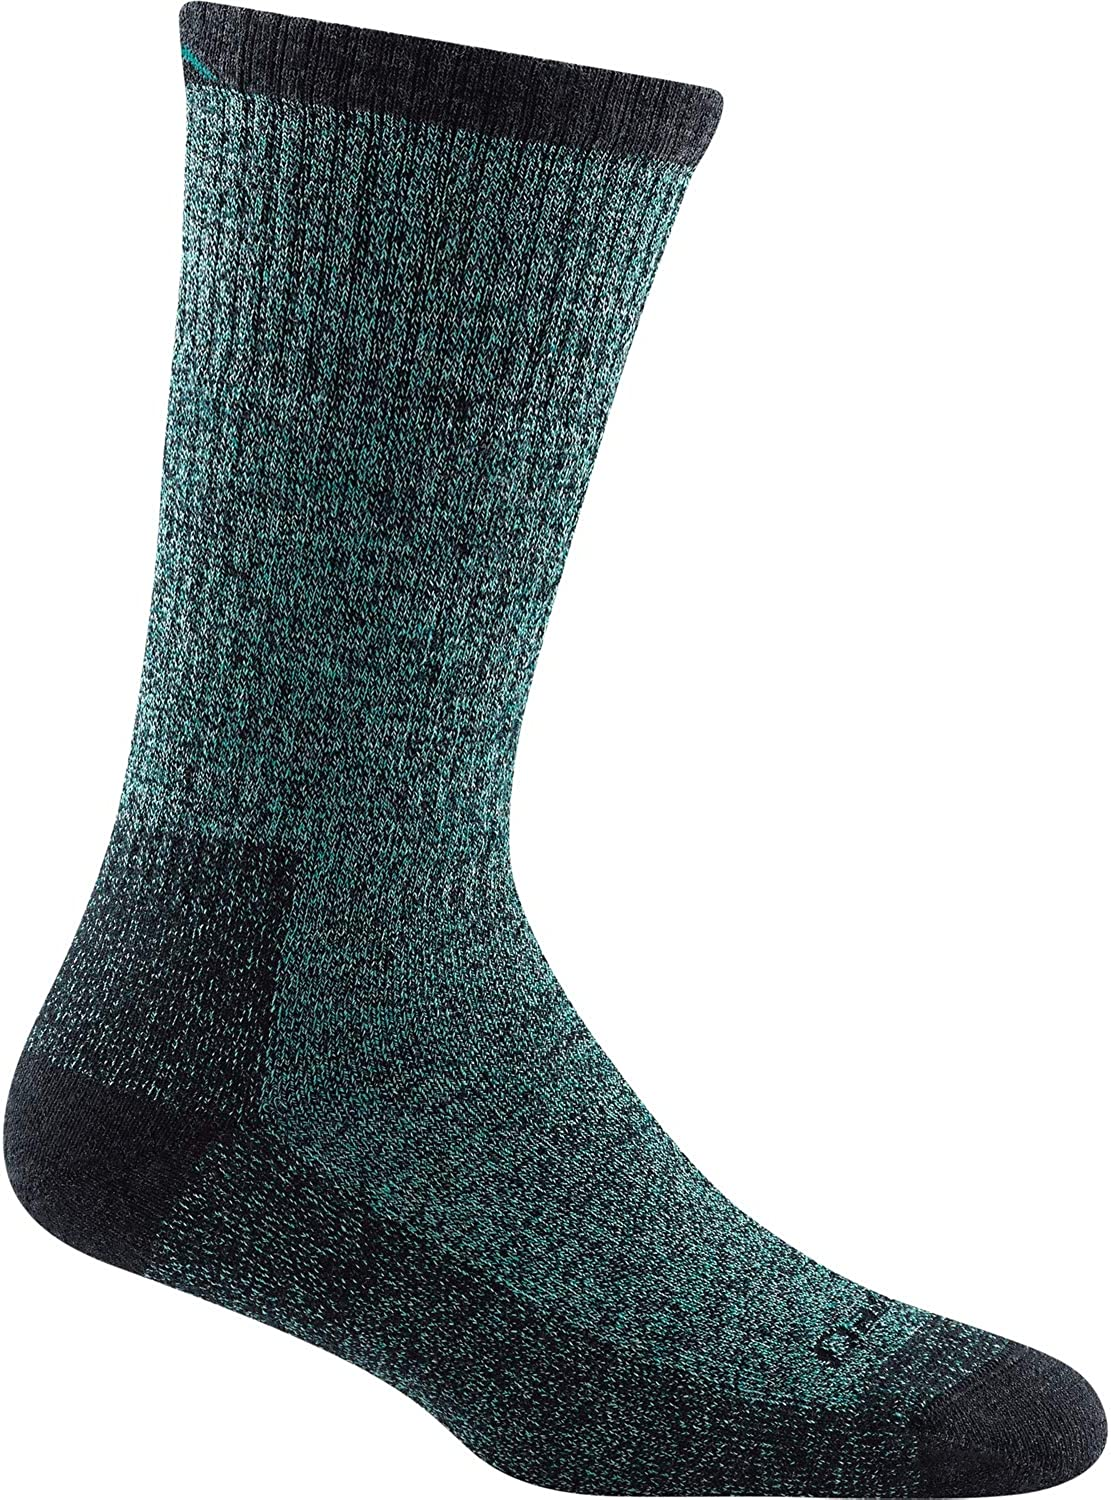 Darn Tough Nomad Boot Midweight Sock with Full Cushion - Women's